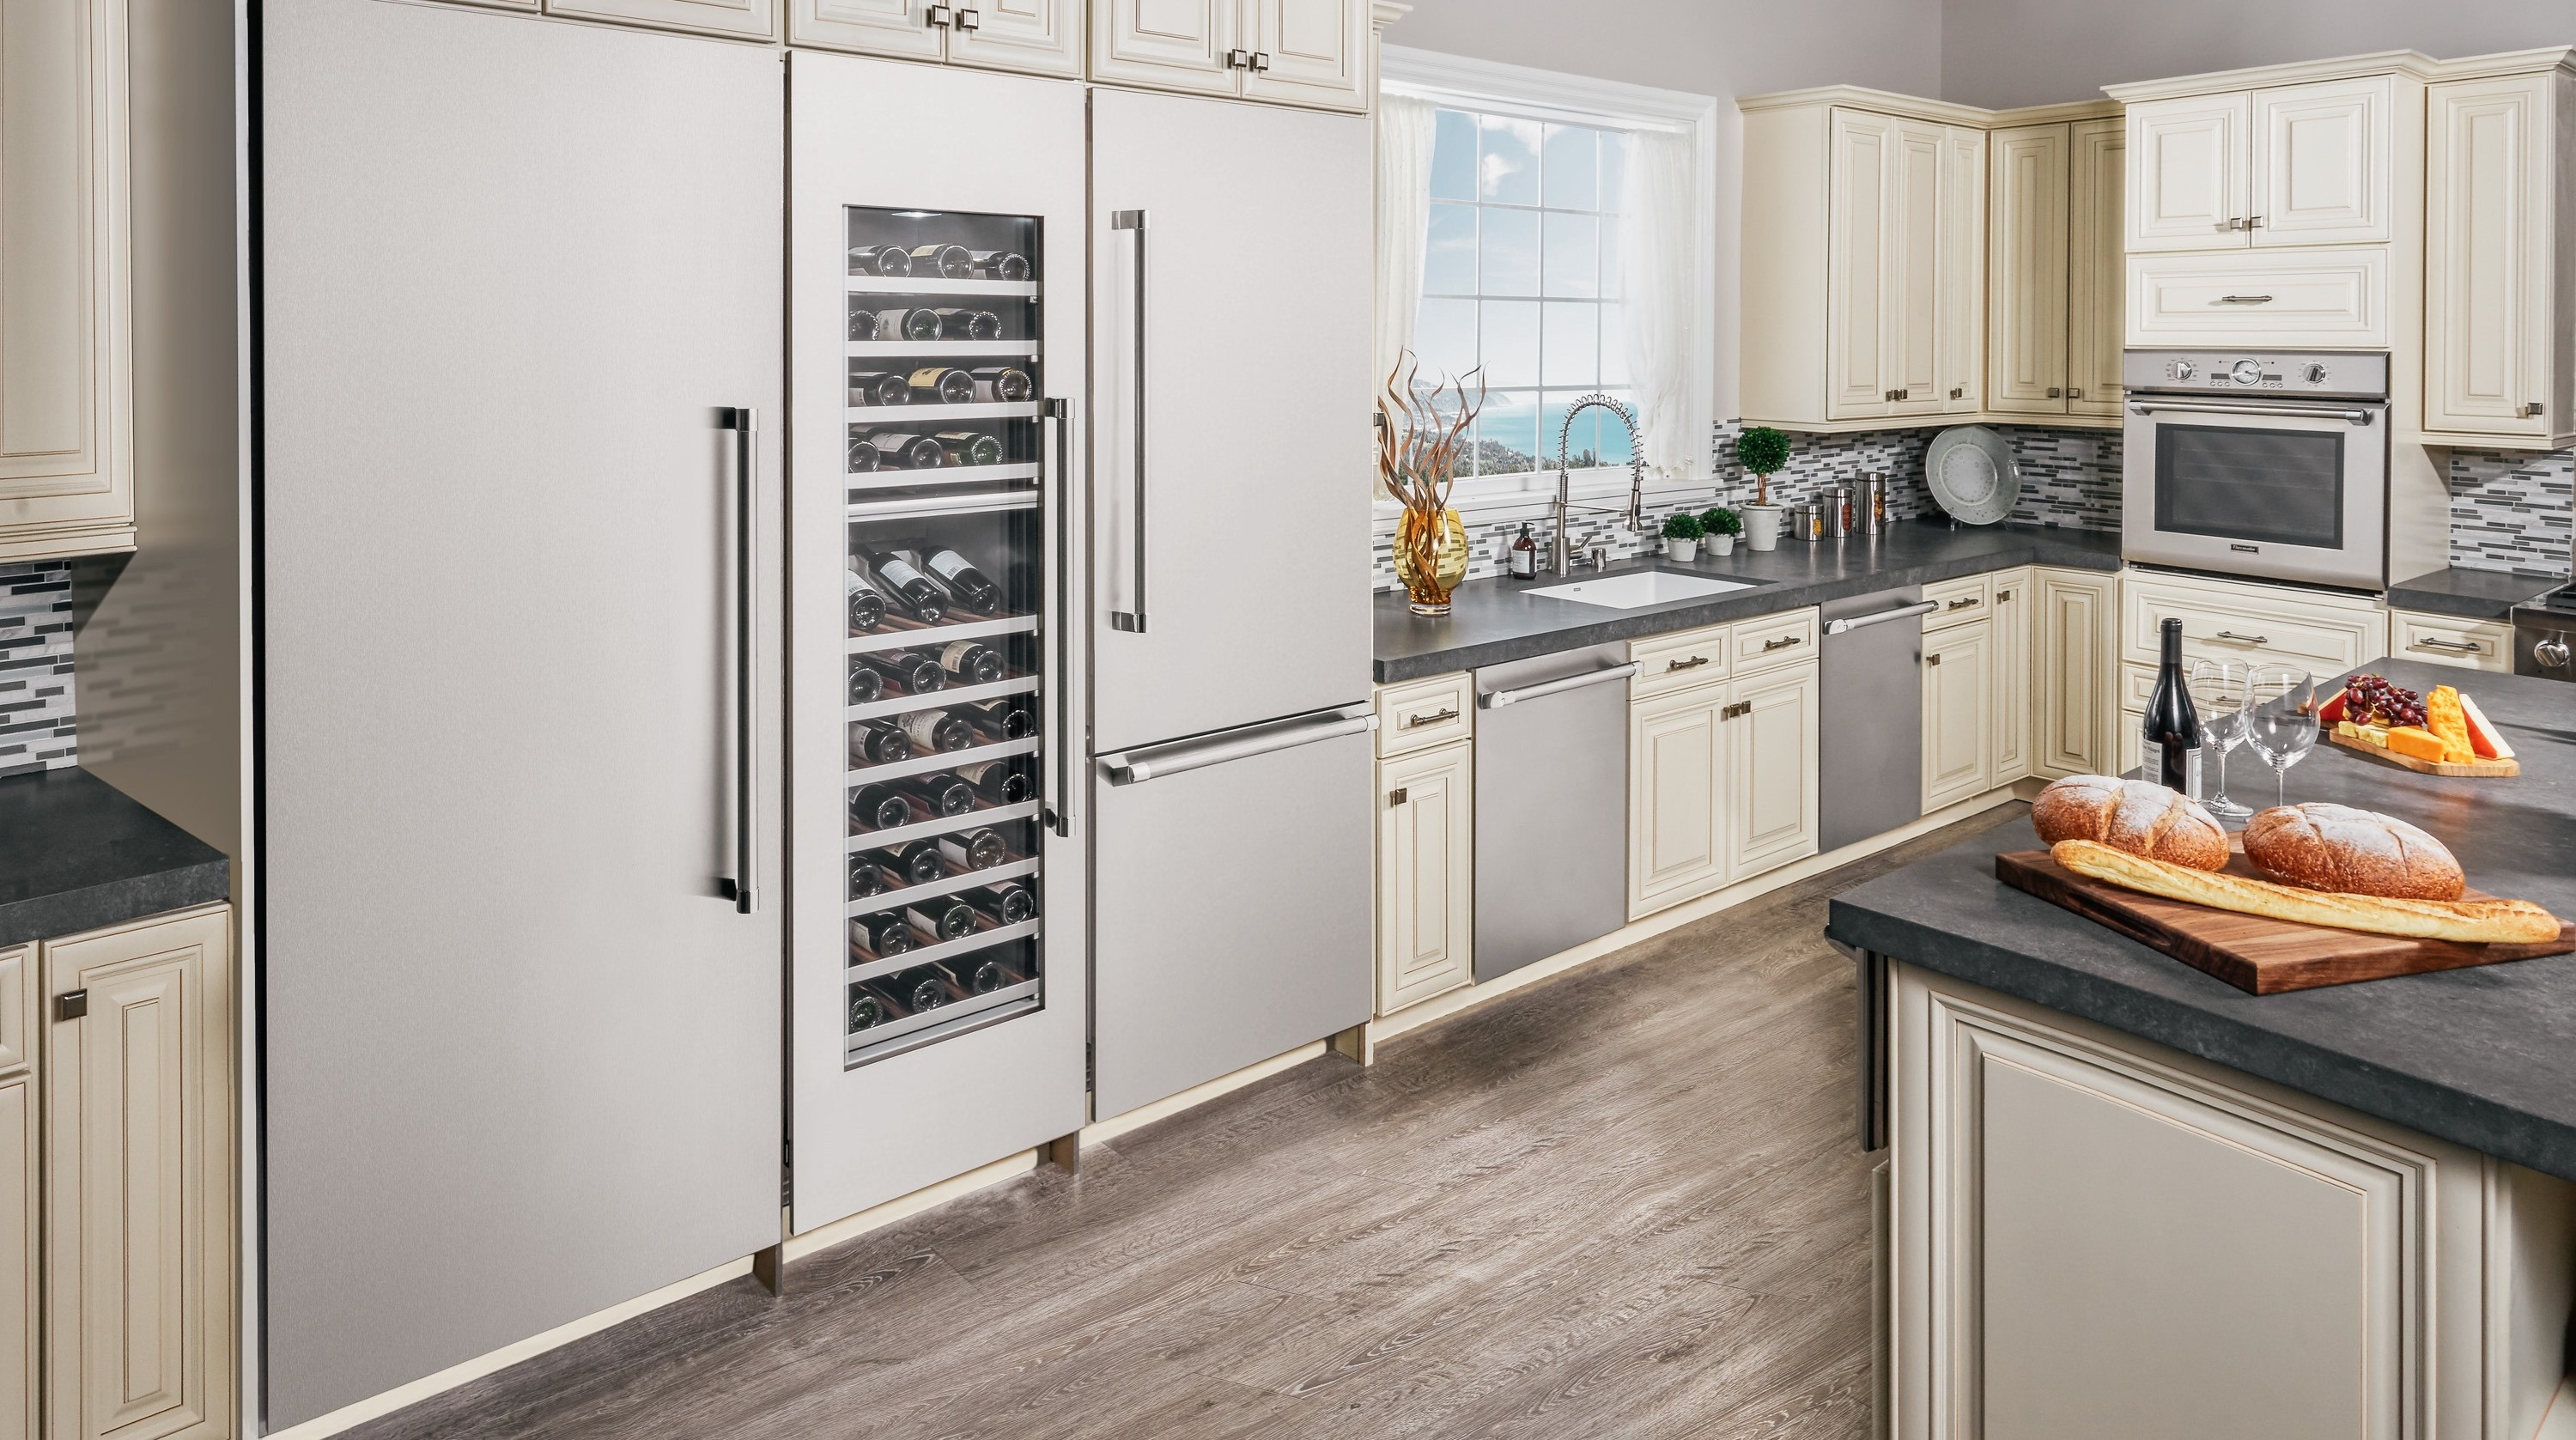 Thermador Home Appliance Blog The Ultimate Entertainer S Kitchen